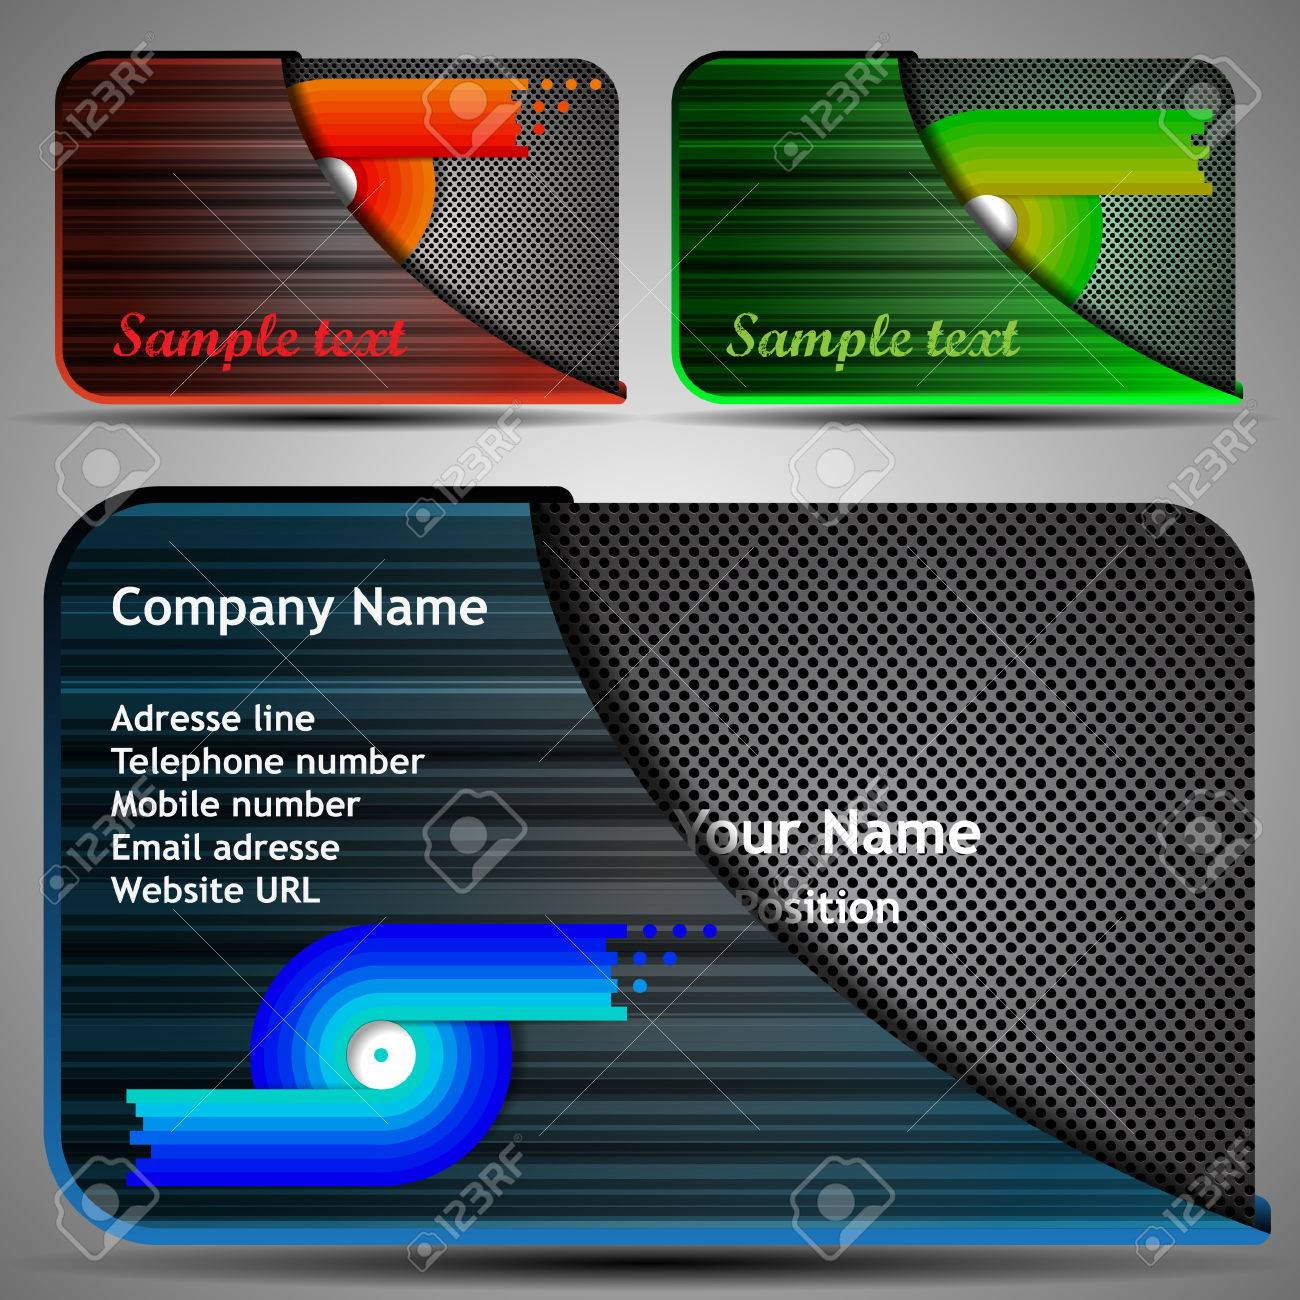 Colorful futuristic business card template layout with case colorful futuristic business card template layout with case abstract metallic pattern various colors flashek